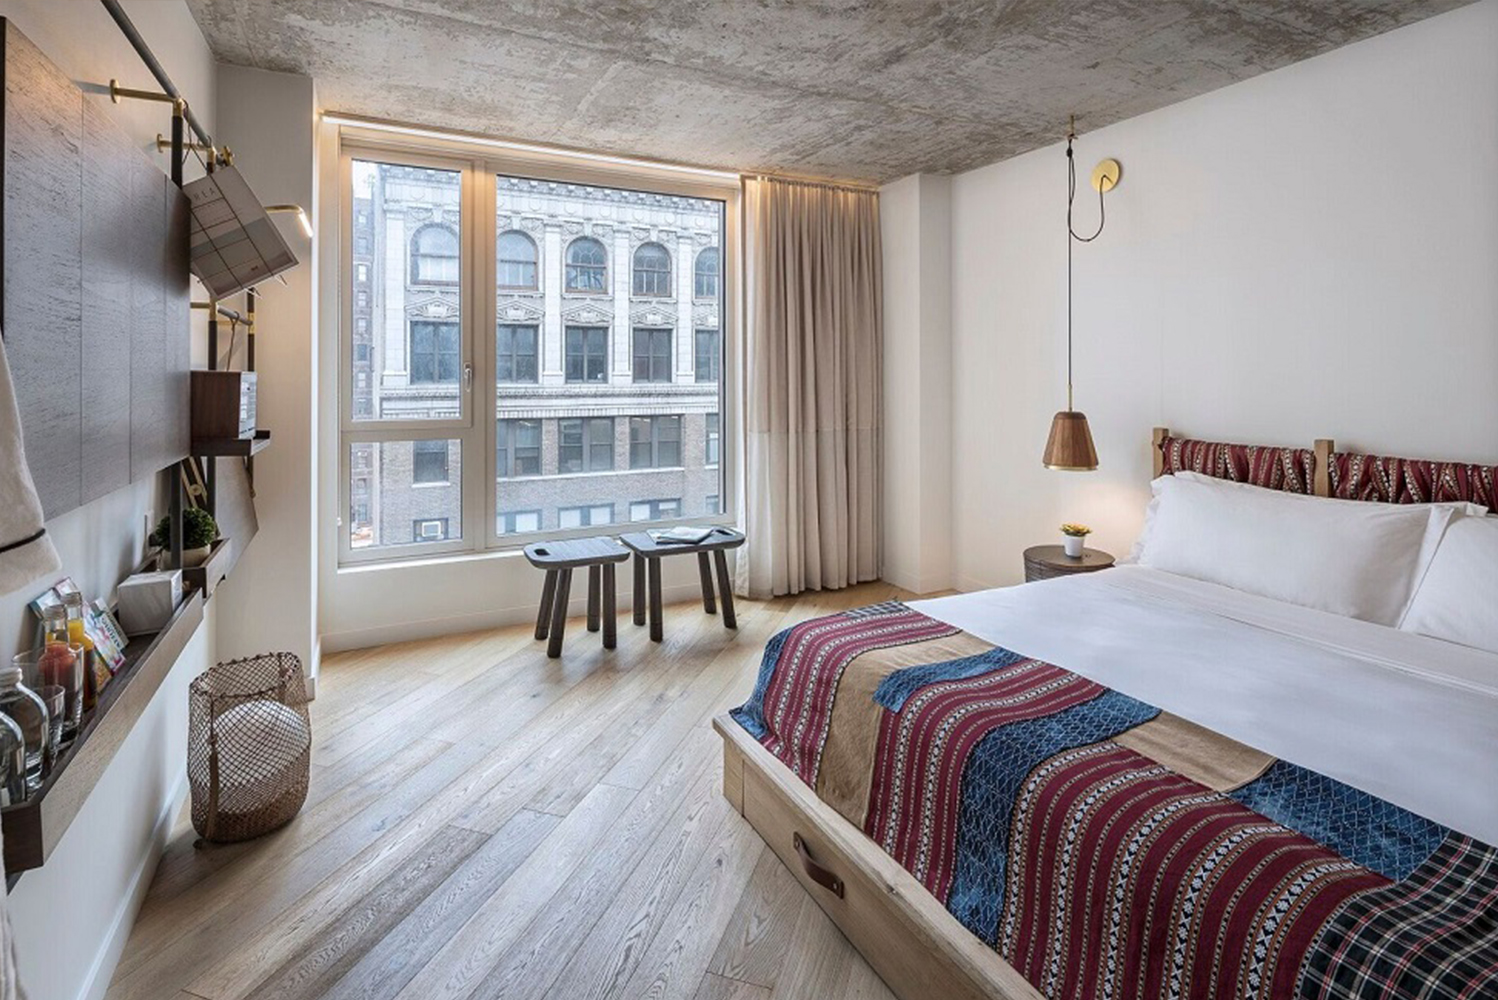 The rooms have exposed custom raw-bronze shelving and handwoven fabrics that create a backdrop for a multi-directional day bed platform.